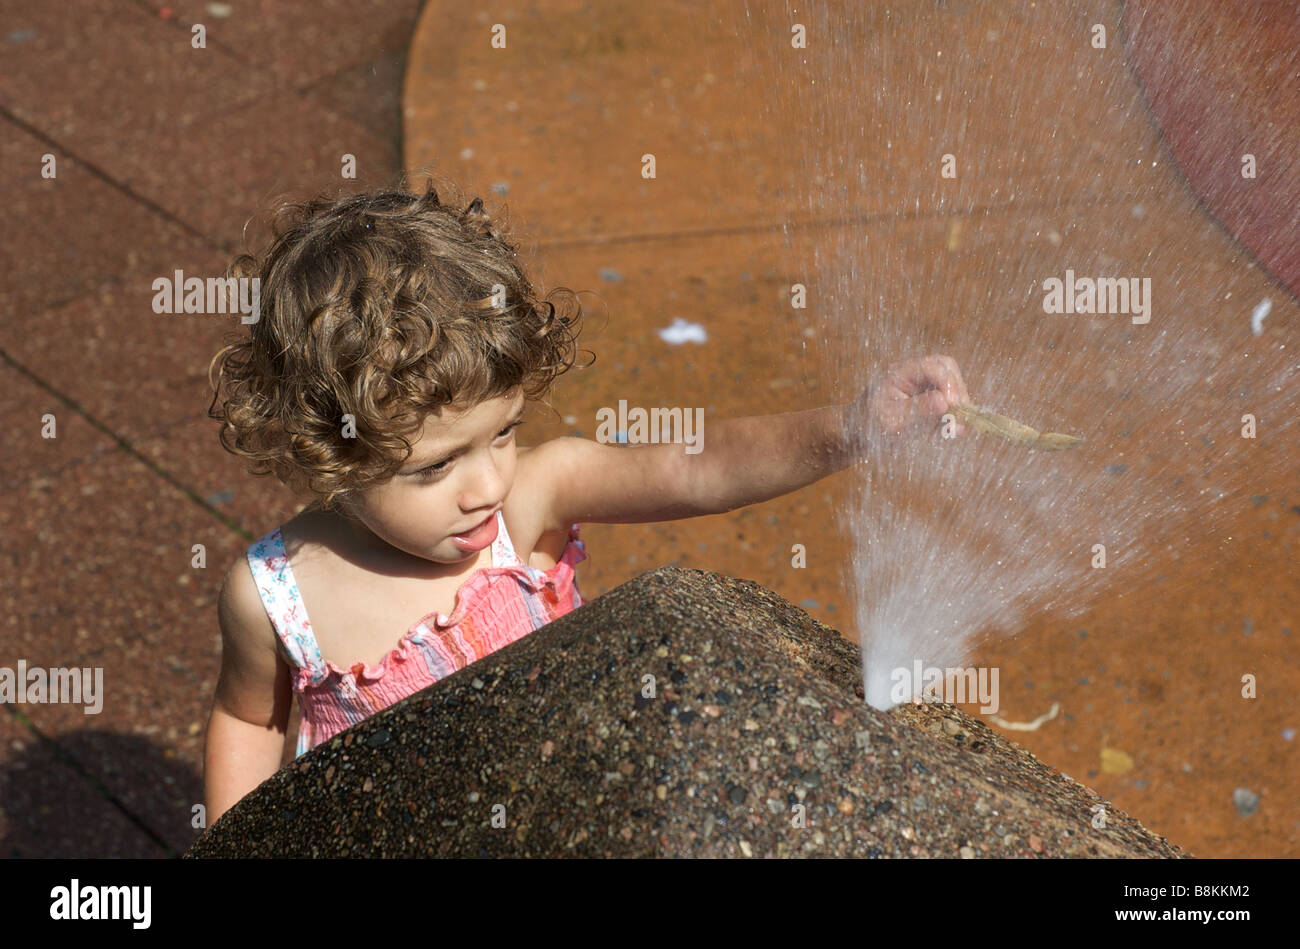 Child Plays with a Squirting Water Fountain in an Urban Playground in New York, USA - Stock Image